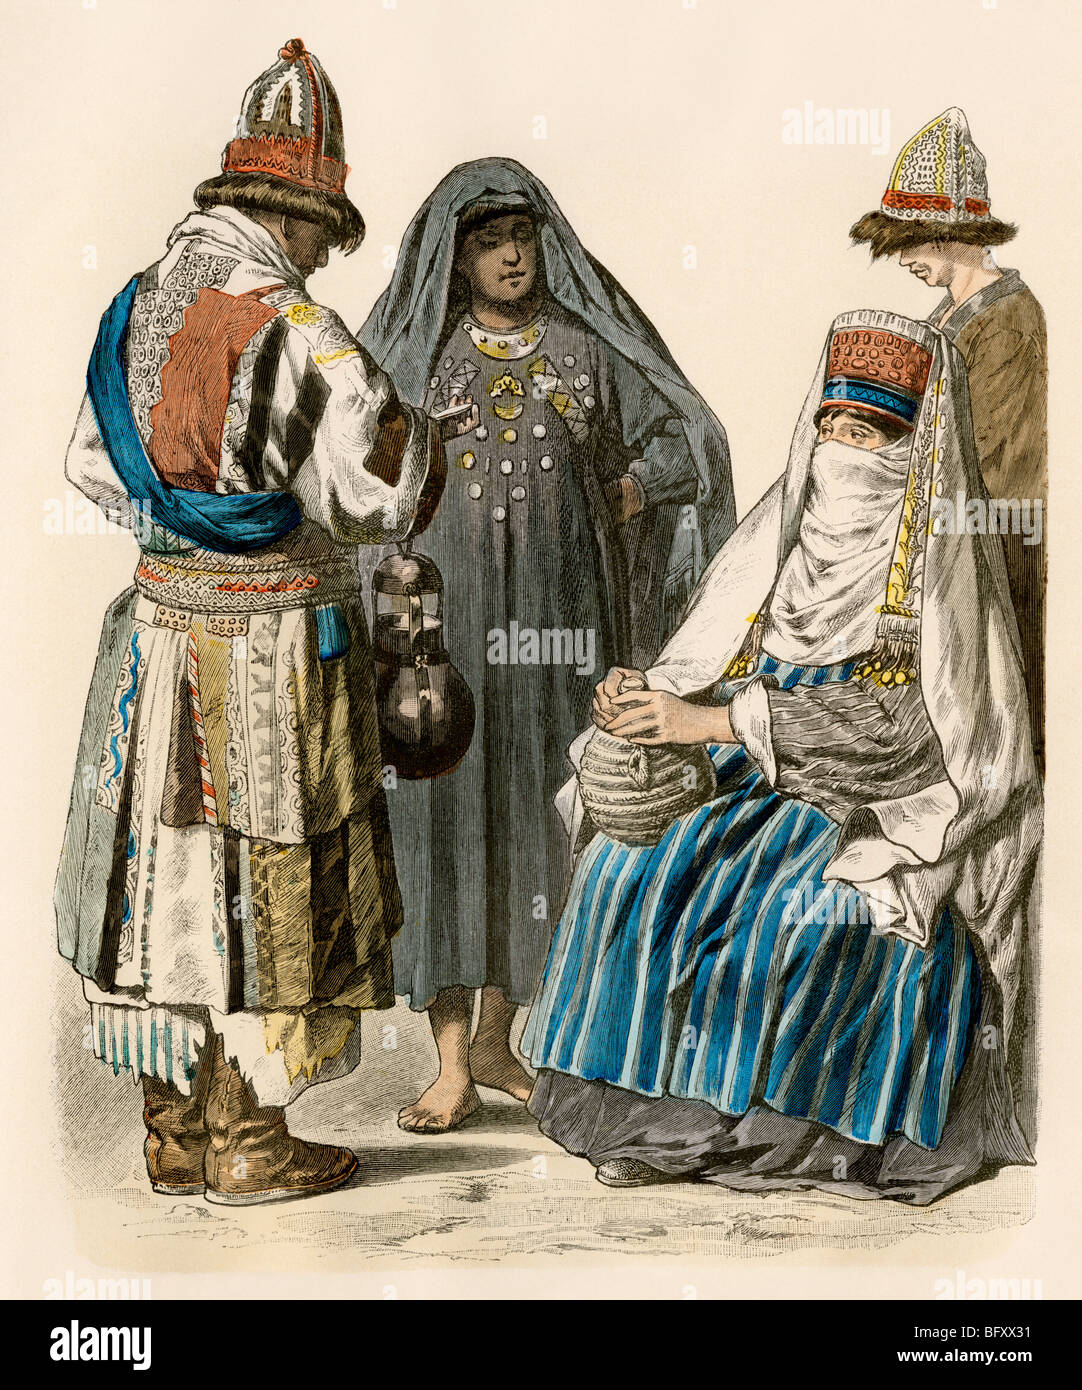 Muslim dervish and Turkish women in their native attire. Hand-colored print - Stock Image